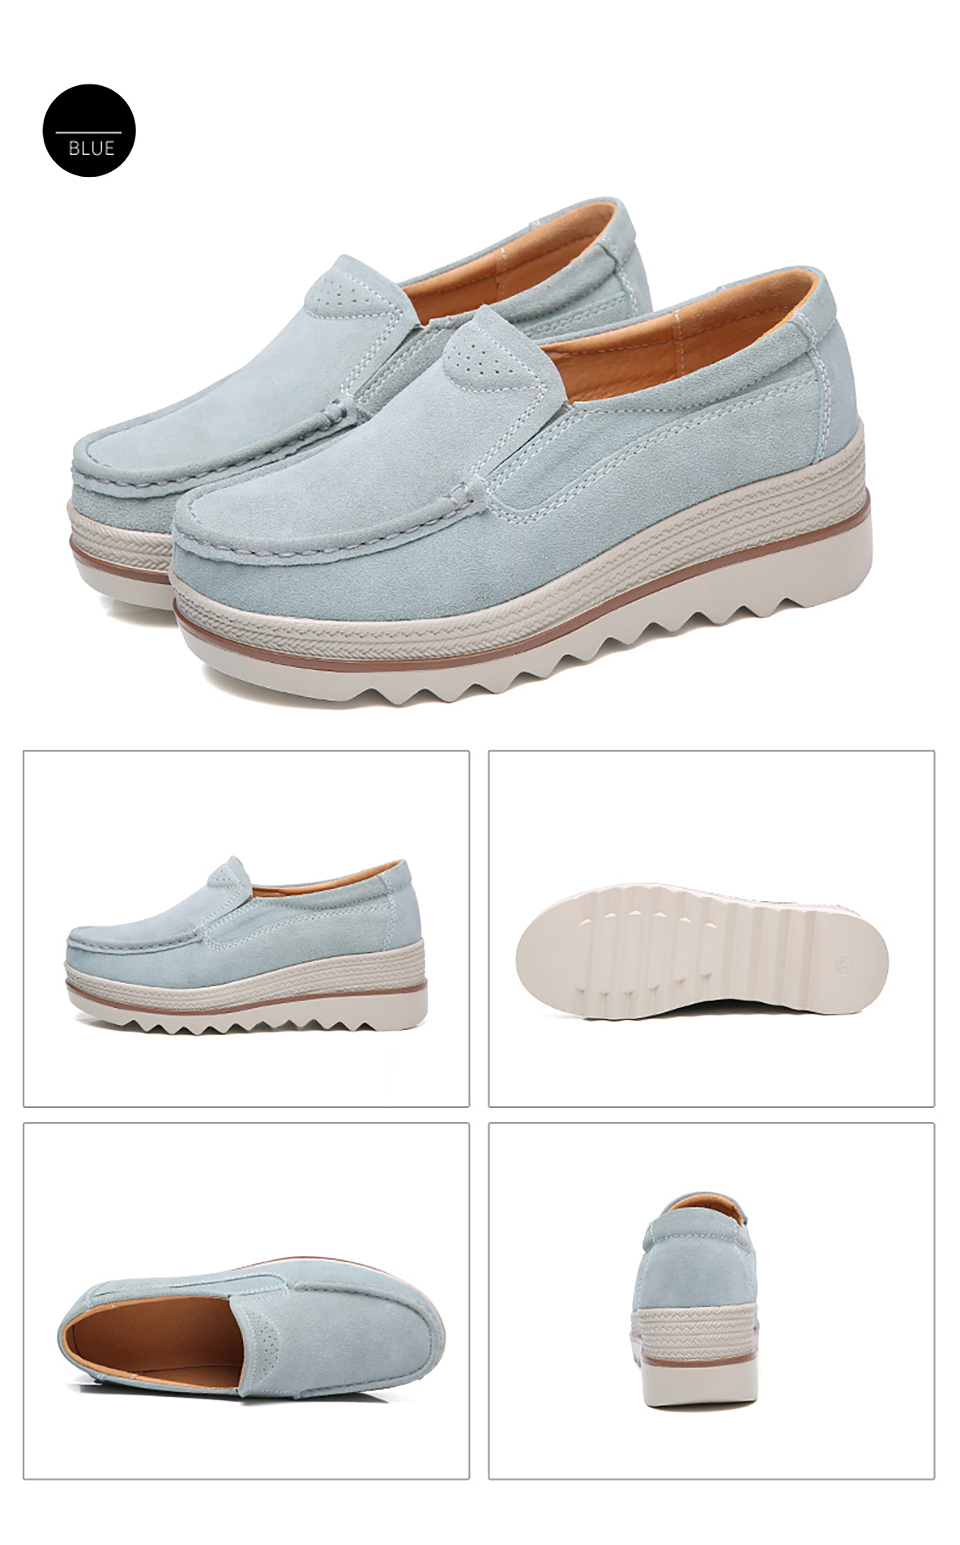 HTB1YFpMOhTpK1RjSZR0q6zEwXXaS 2019 Spring Women Flats Shoes Platform Sneakers Slip On Flats Leather Suede Ladies Loafers Moccasins Casual Shoes Women Creepers